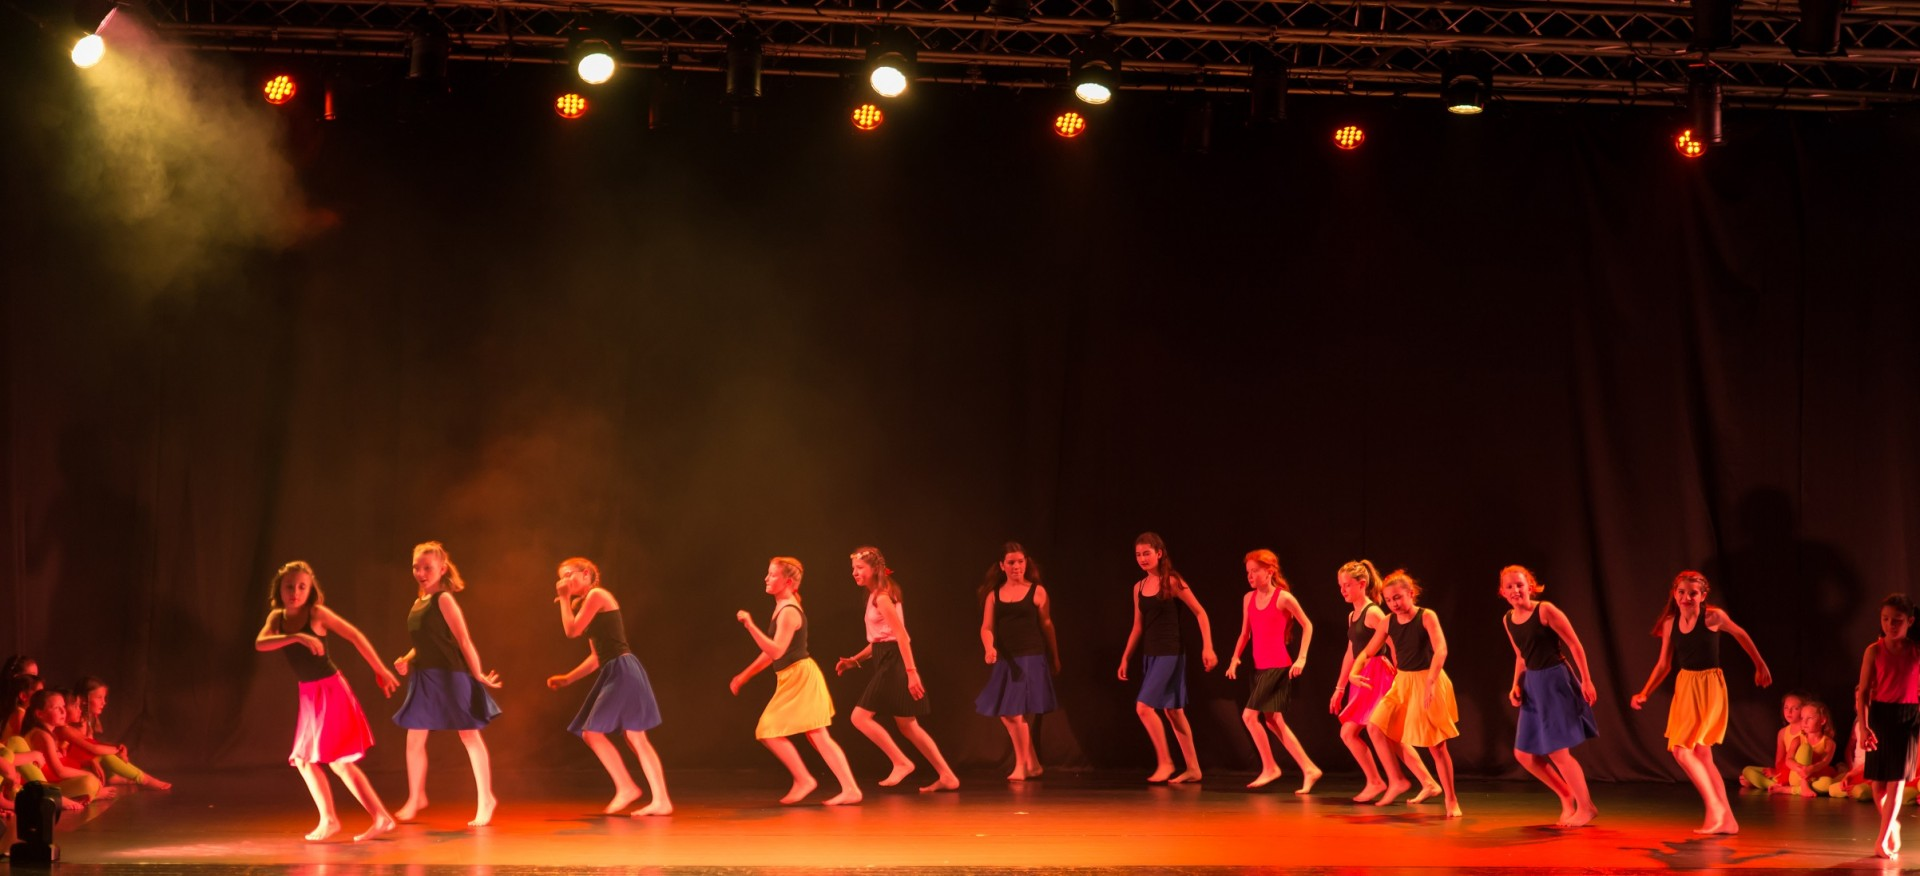 SPECTACLE DANSE 18